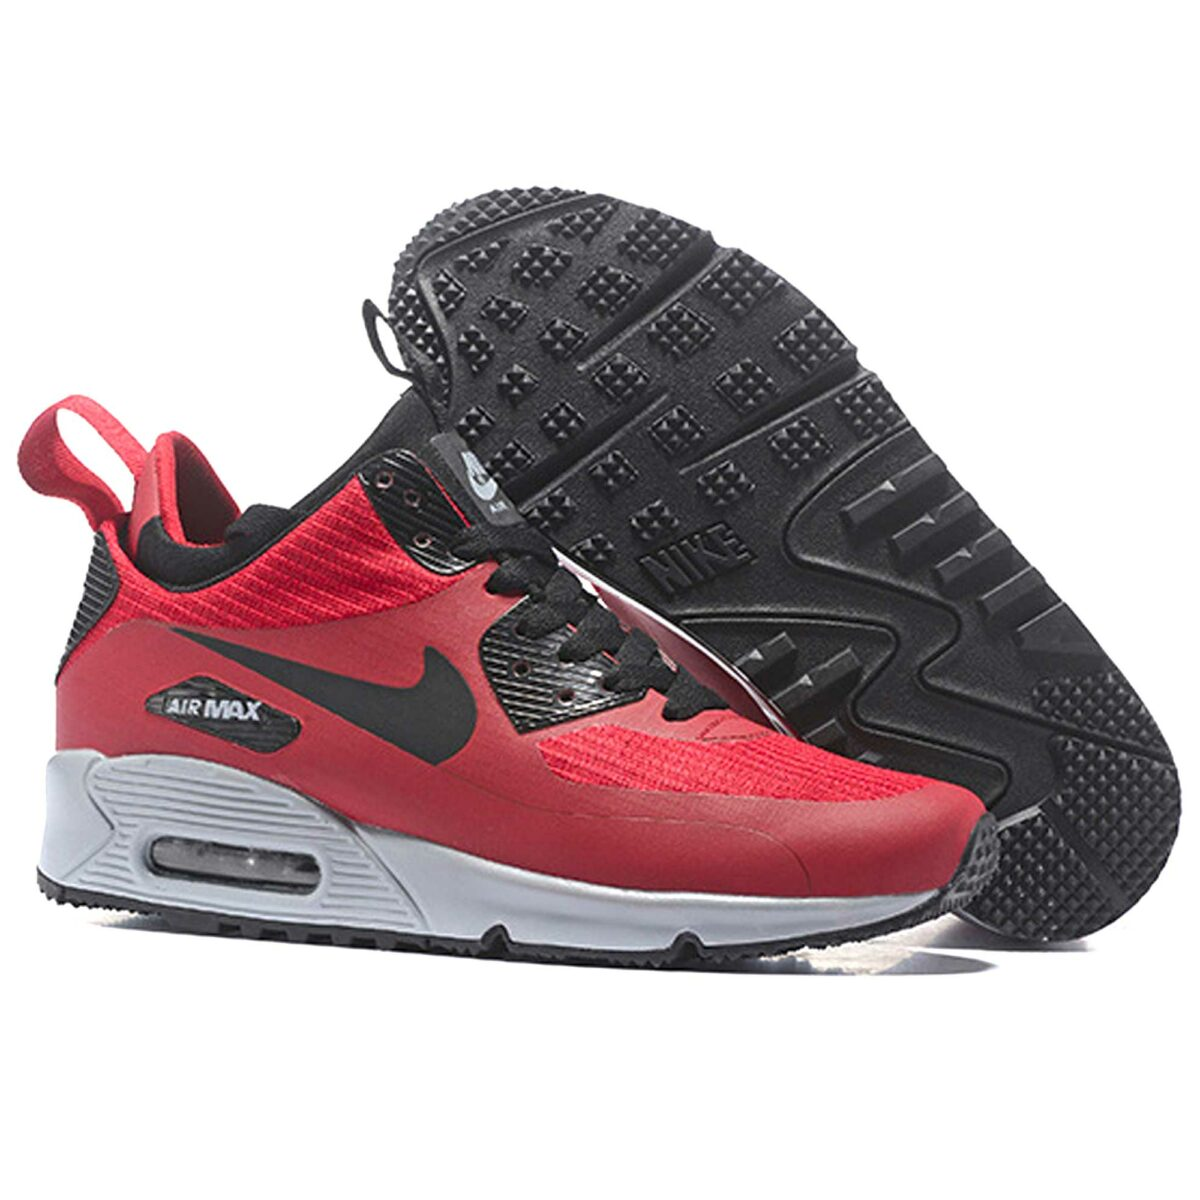 nike air max 90 mid red winter 806808_600 купить